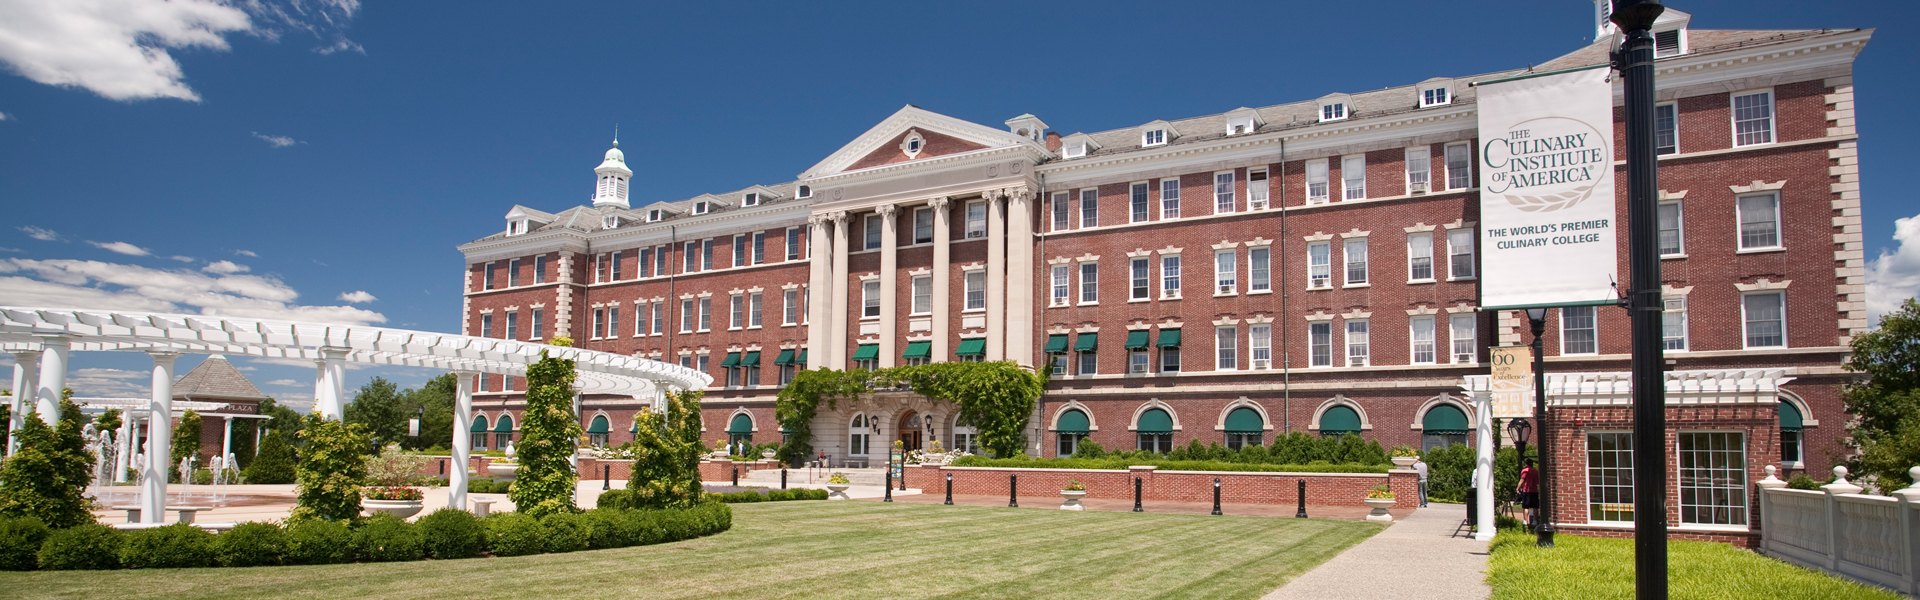 Image result for The Culinary Institute of America New York